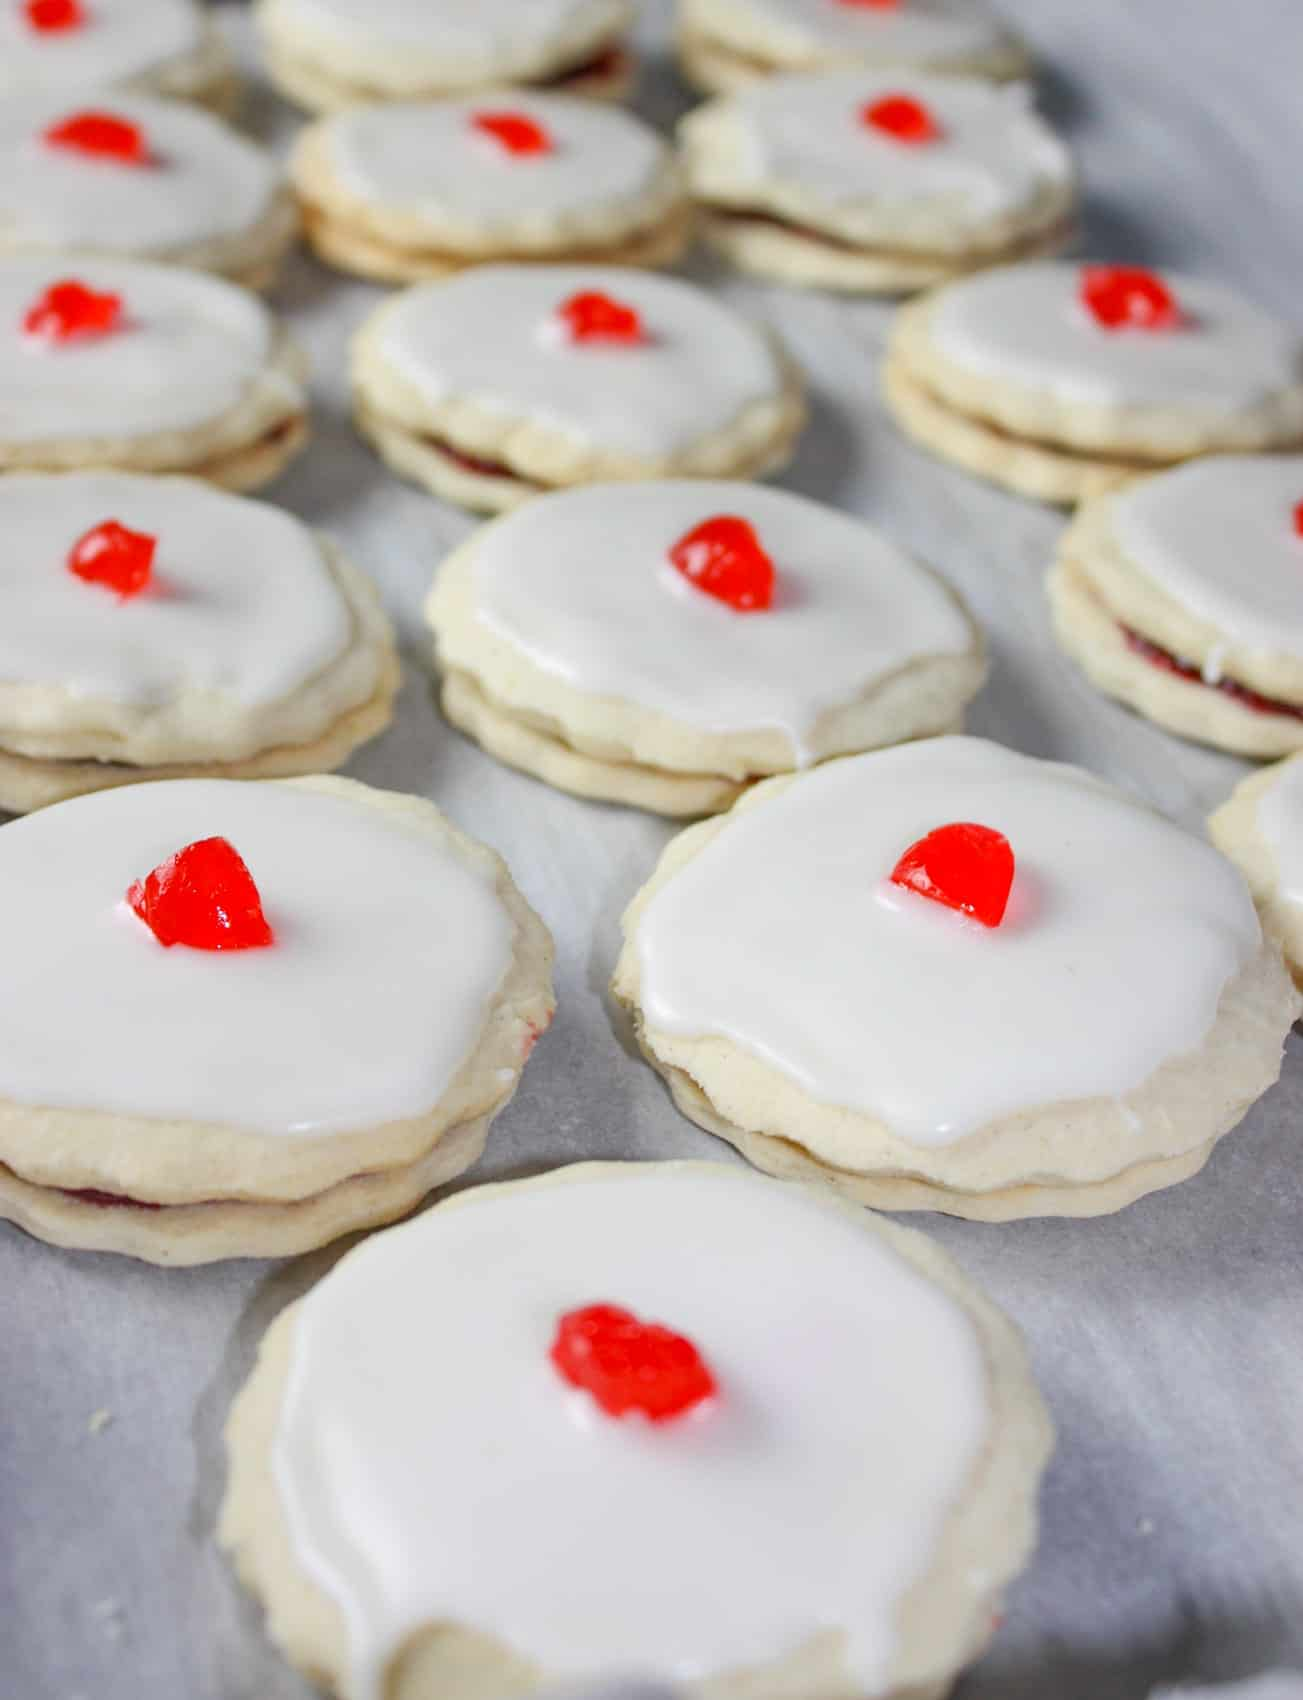 Empire Cookies are a favourite from my gluten eating days. This gluten free version, with sweet almond icing, was a heavenly treat and satisfied my cravings for a cookie that I have missed for many years!